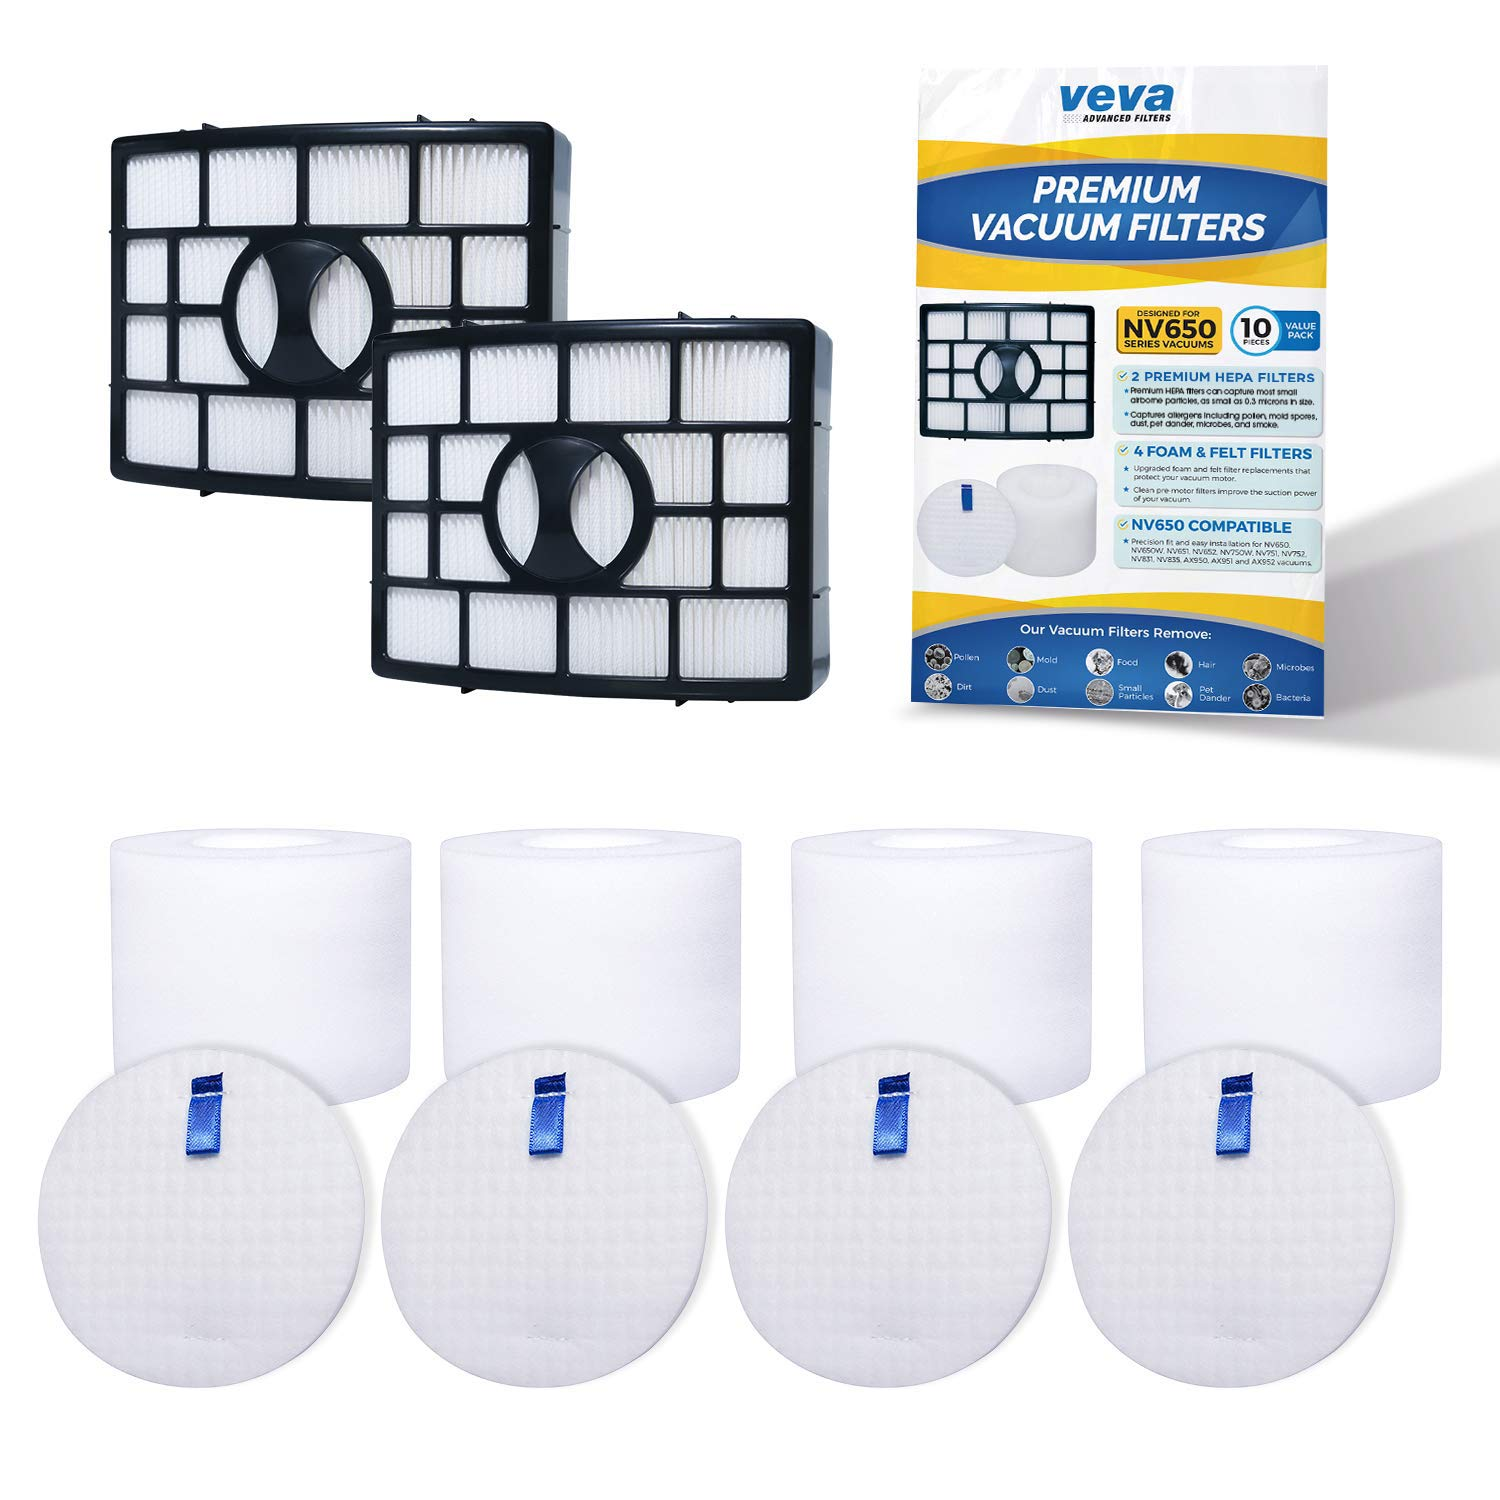 VEVA Premium Vacuum Filter Set with 2 HEPA, 4 Foam, 4 Felt Filters for Shark Rotator Navigator Duoclean Lift-Away Upright Model NV650, 650W, 651, 652, 750W, 751, 752, 831, 835; AX950, 951 & 952